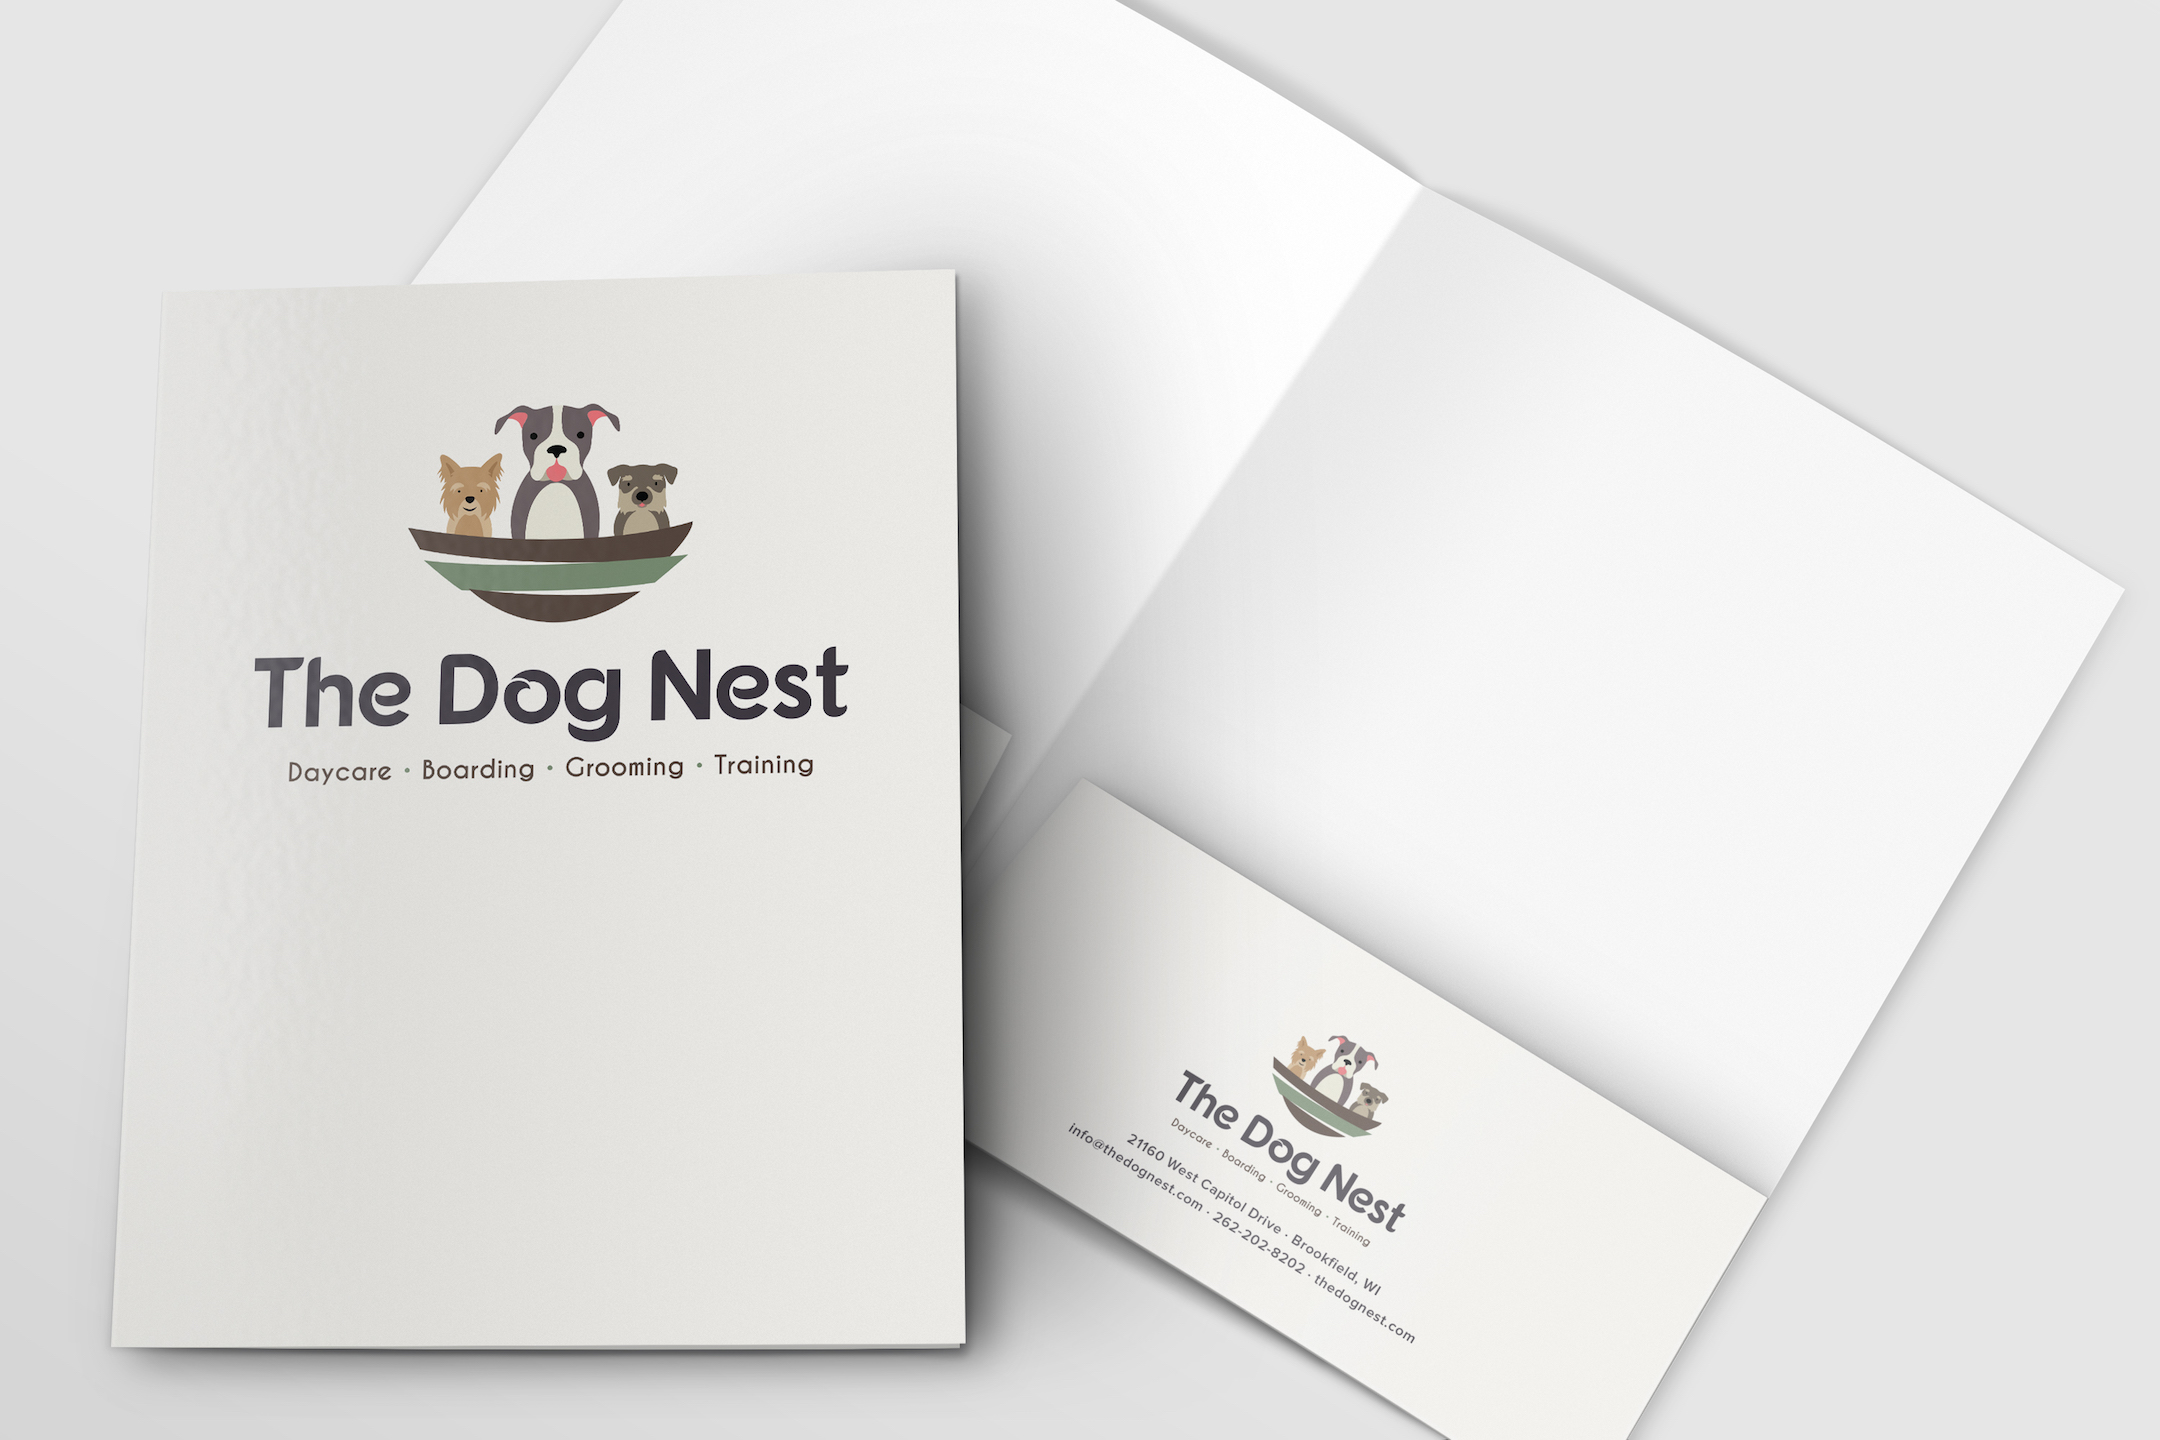 Golden-Antler-Graphic-Design-Milwaukee-Web-Branding-Marketing-Wisconsin-The-Dog-Nest-Custom-Folders-Printing